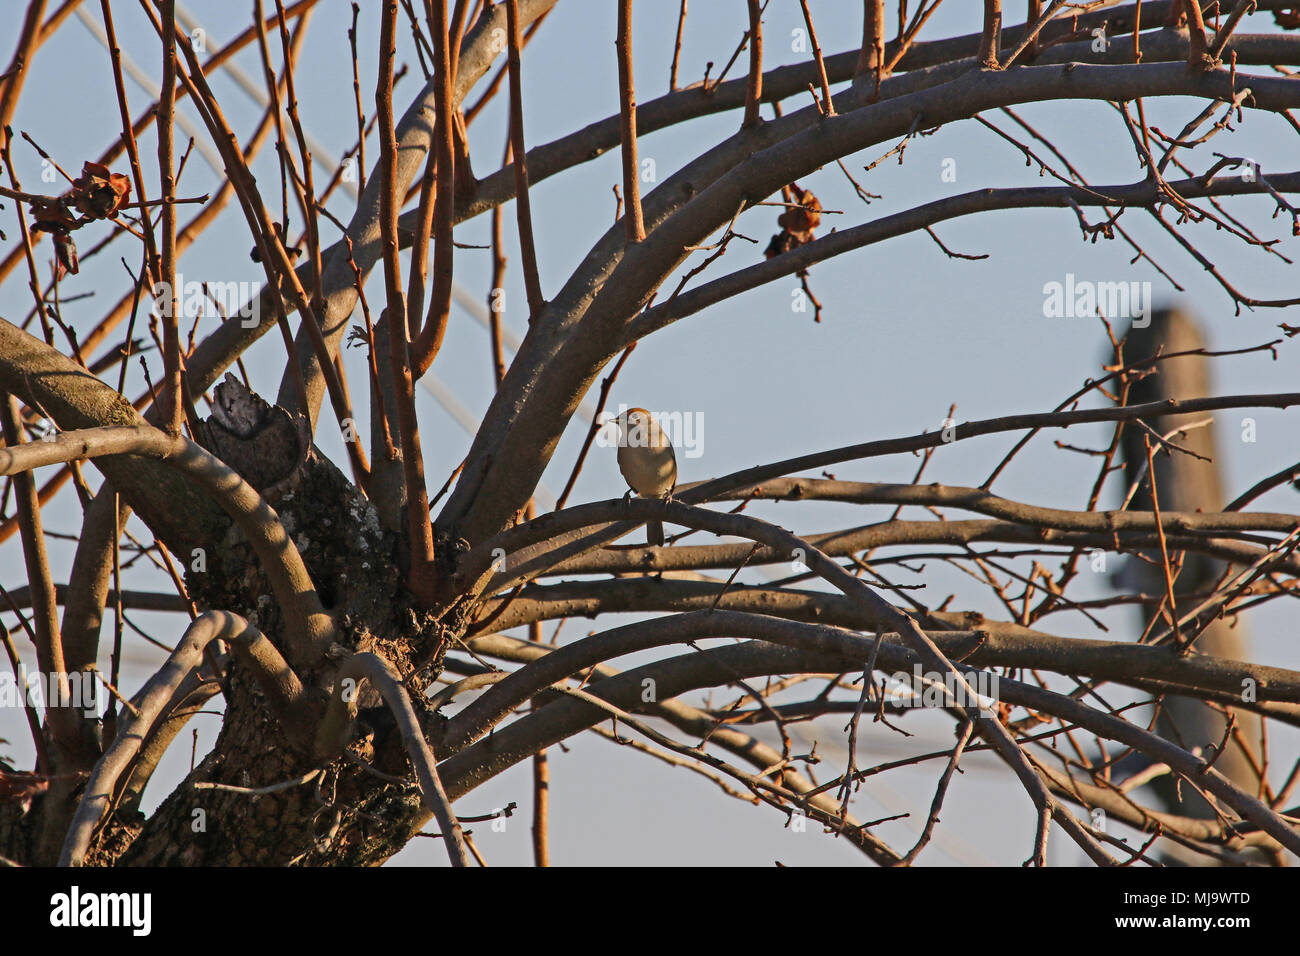 female blackcap with brown cap Latin sylvia atricapilla perched in a persimmon tree in Italy in winter - Stock Image